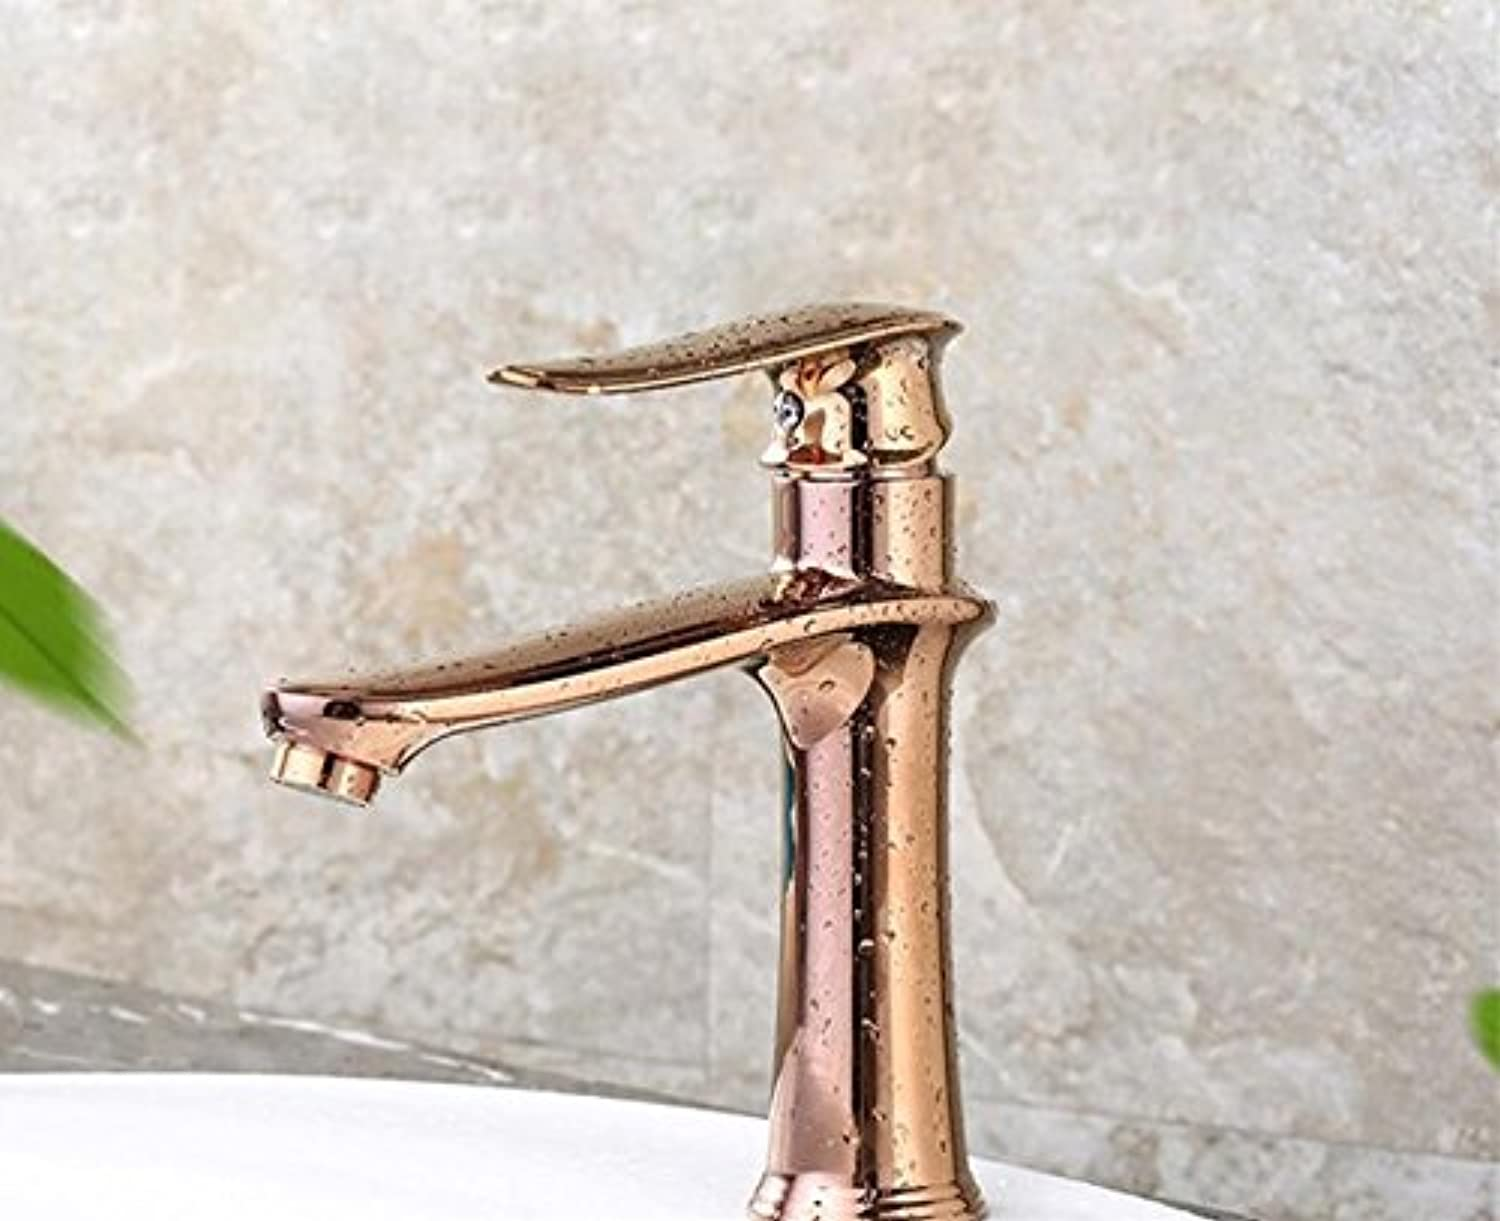 Mkkwp Bathroom Faucet Deck Mounted Brass Vanity Sink Mixer Tap Hot & Cold The Basin Faucet